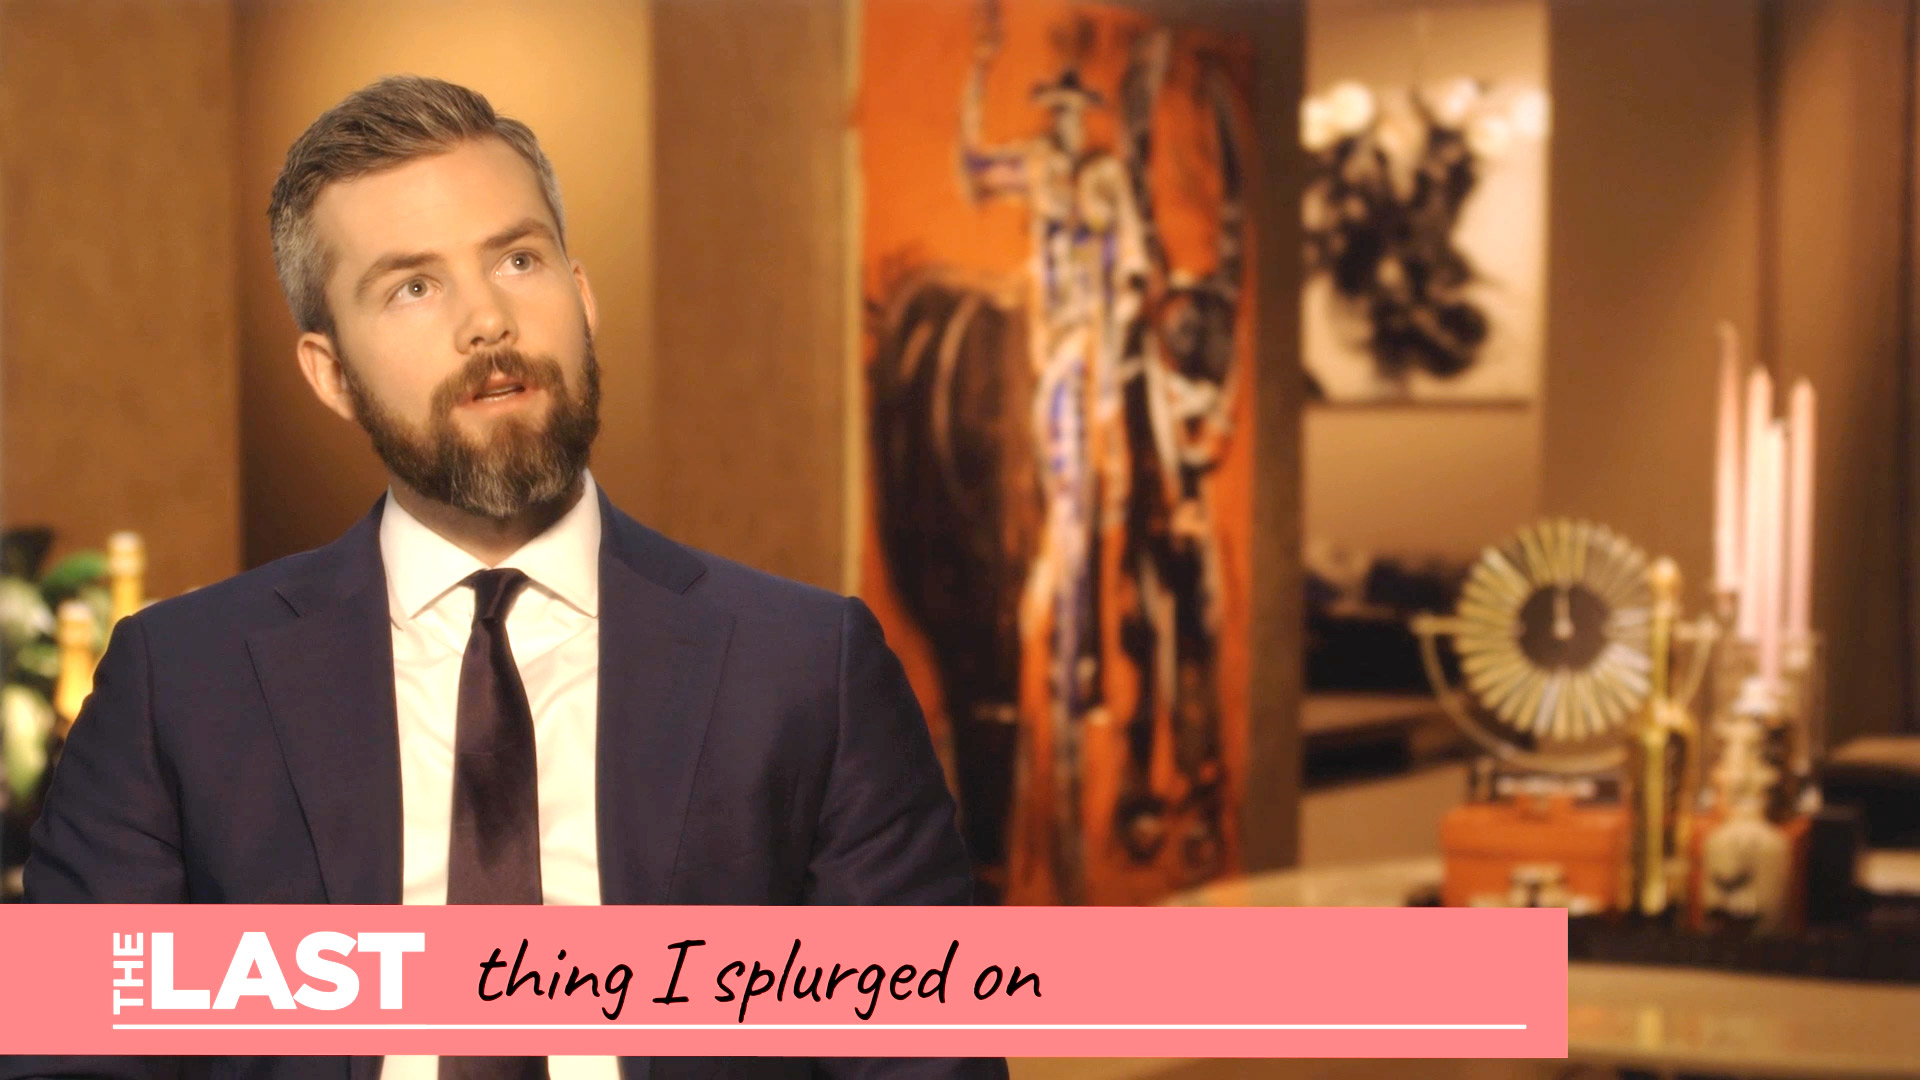 The Last Thing: Ryan Serhant